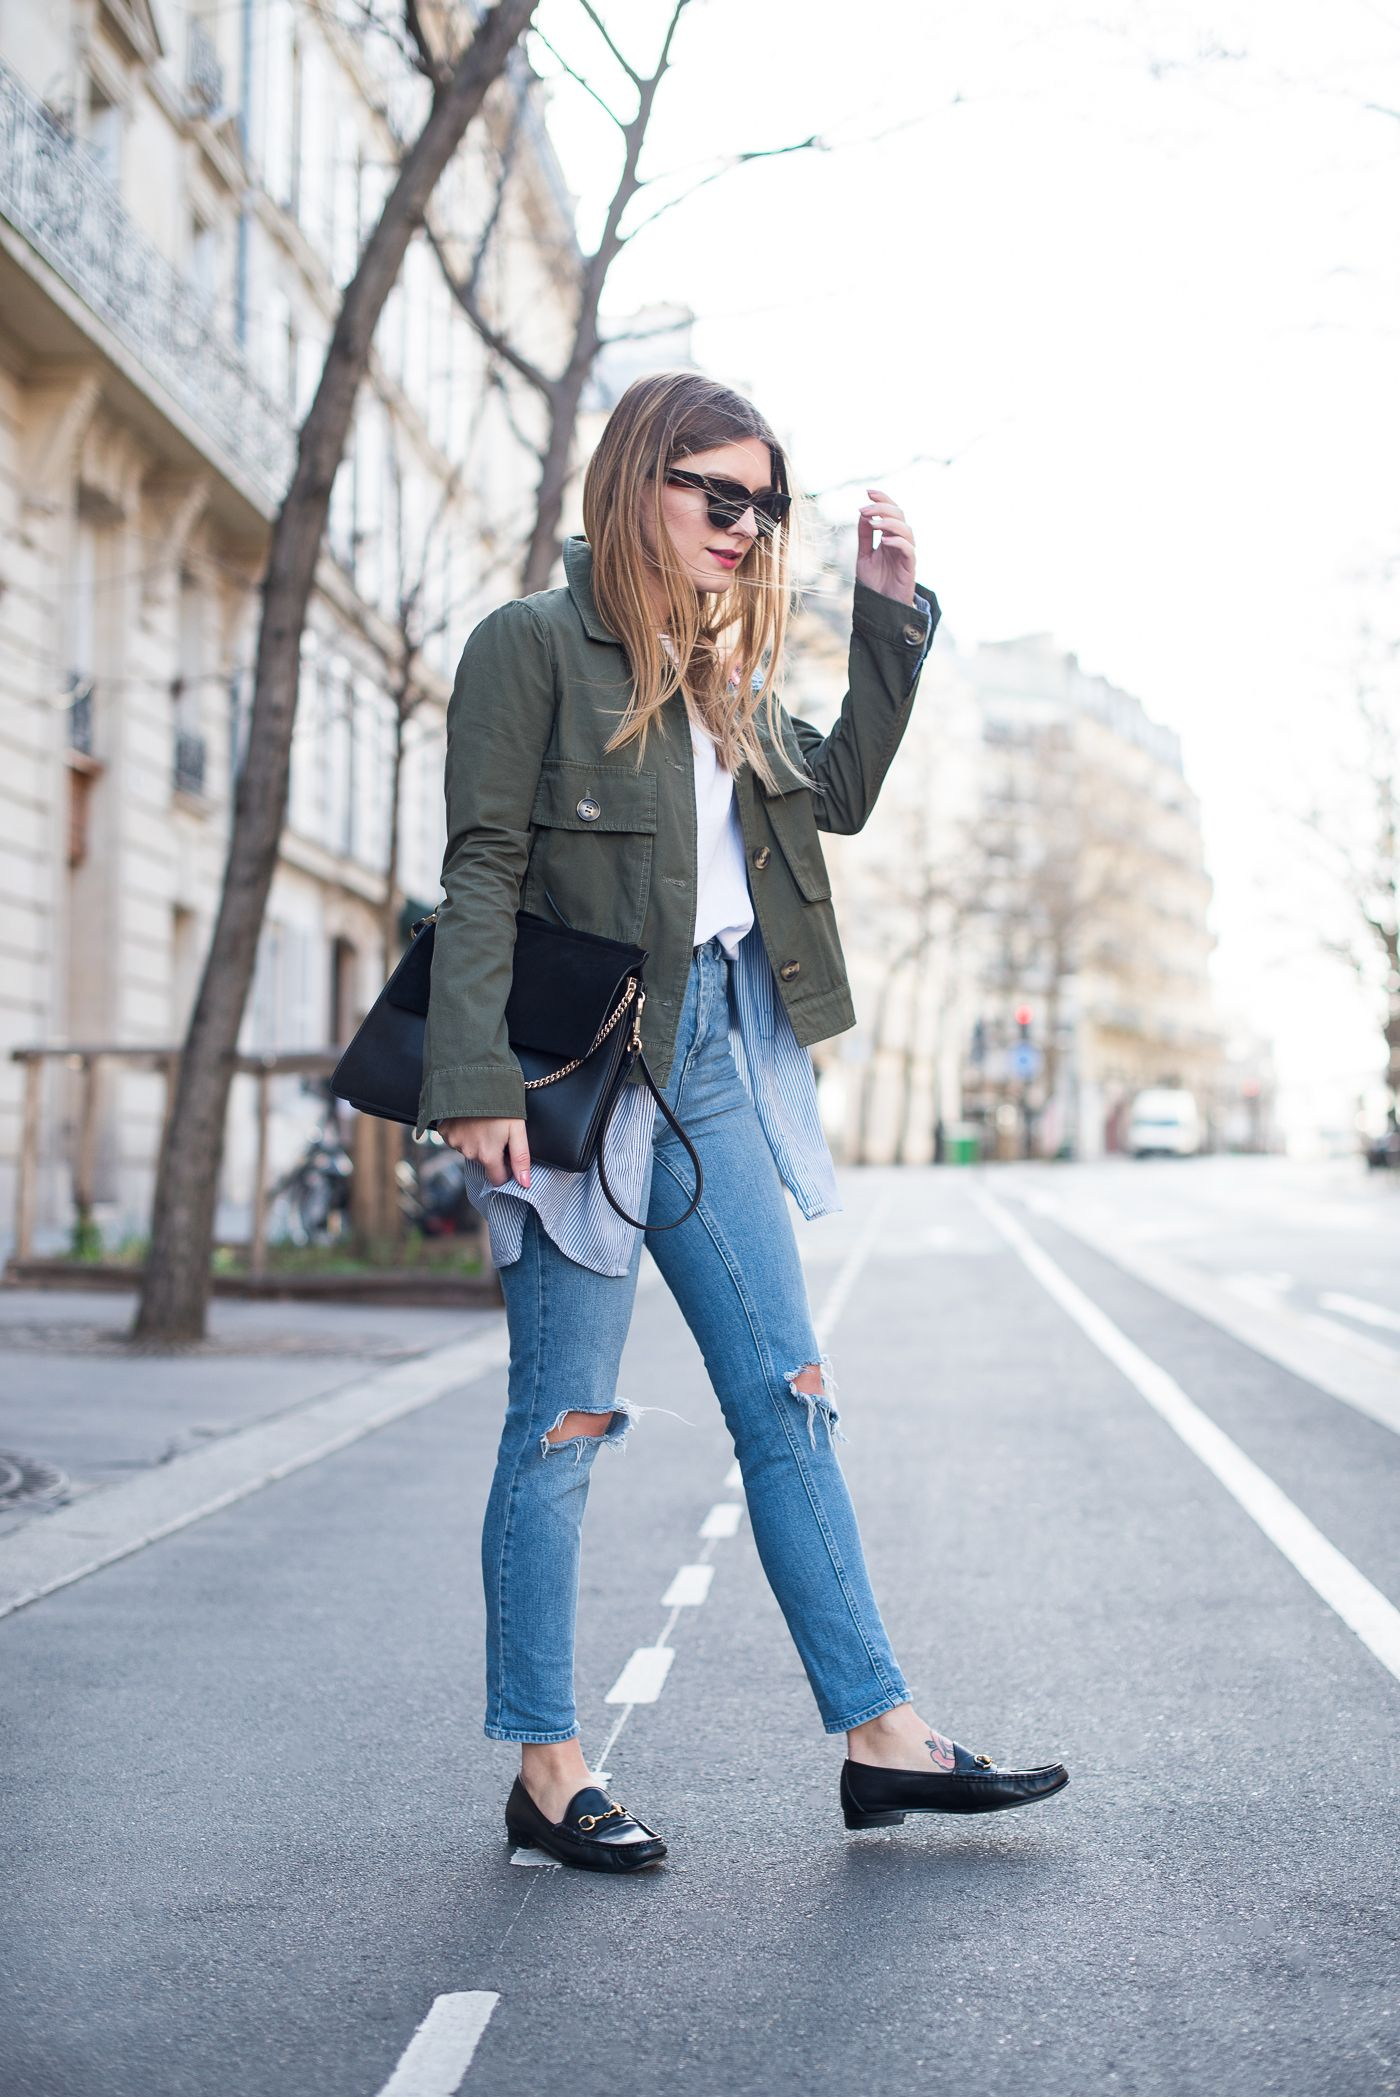 Paris FW casual look – Hoard of Trends - Personal Style & Fashion Blog / Modeblog aus Berlin | @andwhatelse